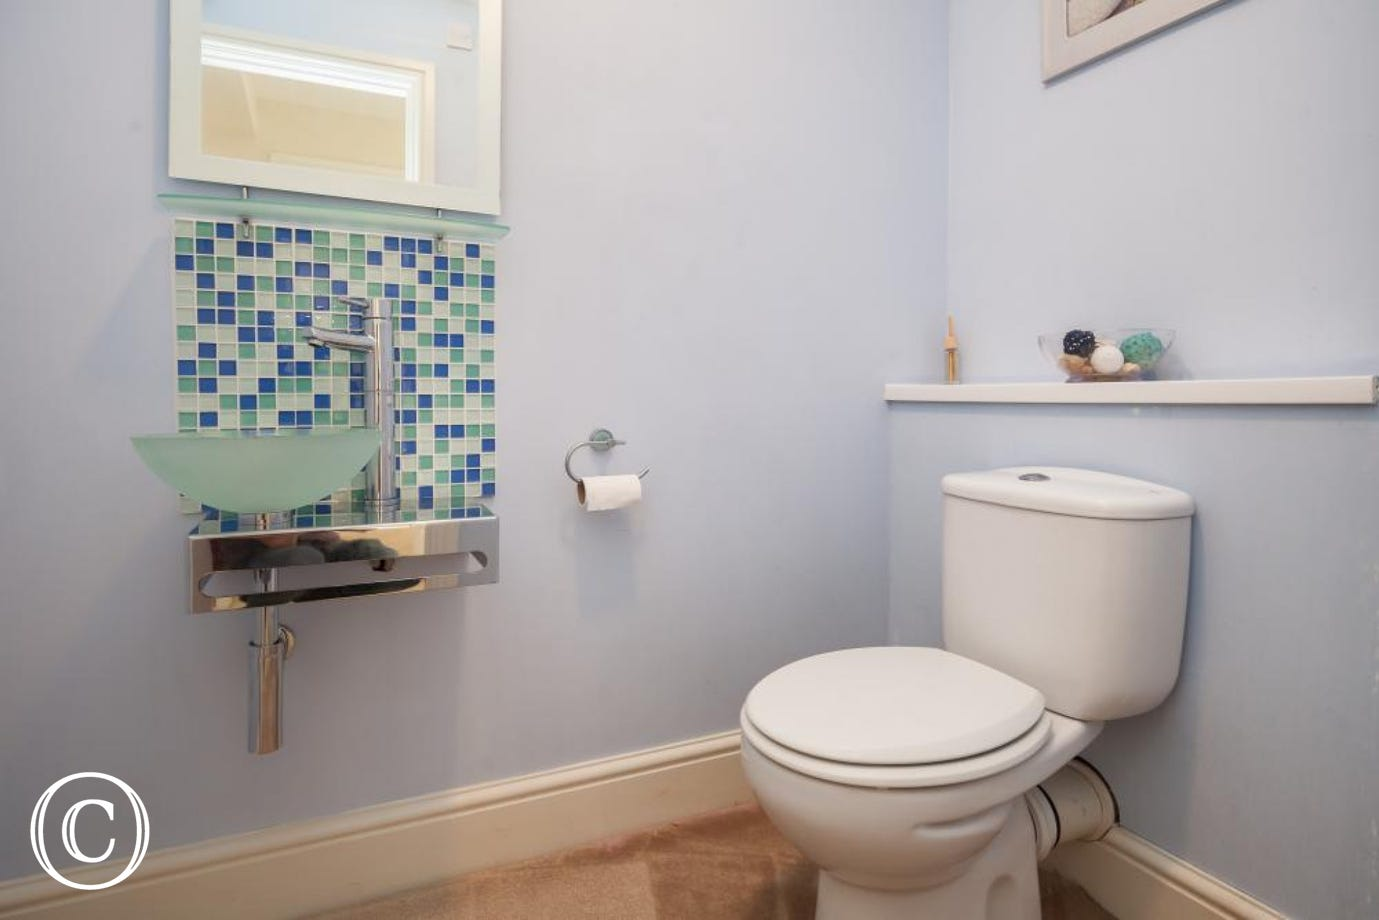 WC and Glass Basin for Stylish Convenience